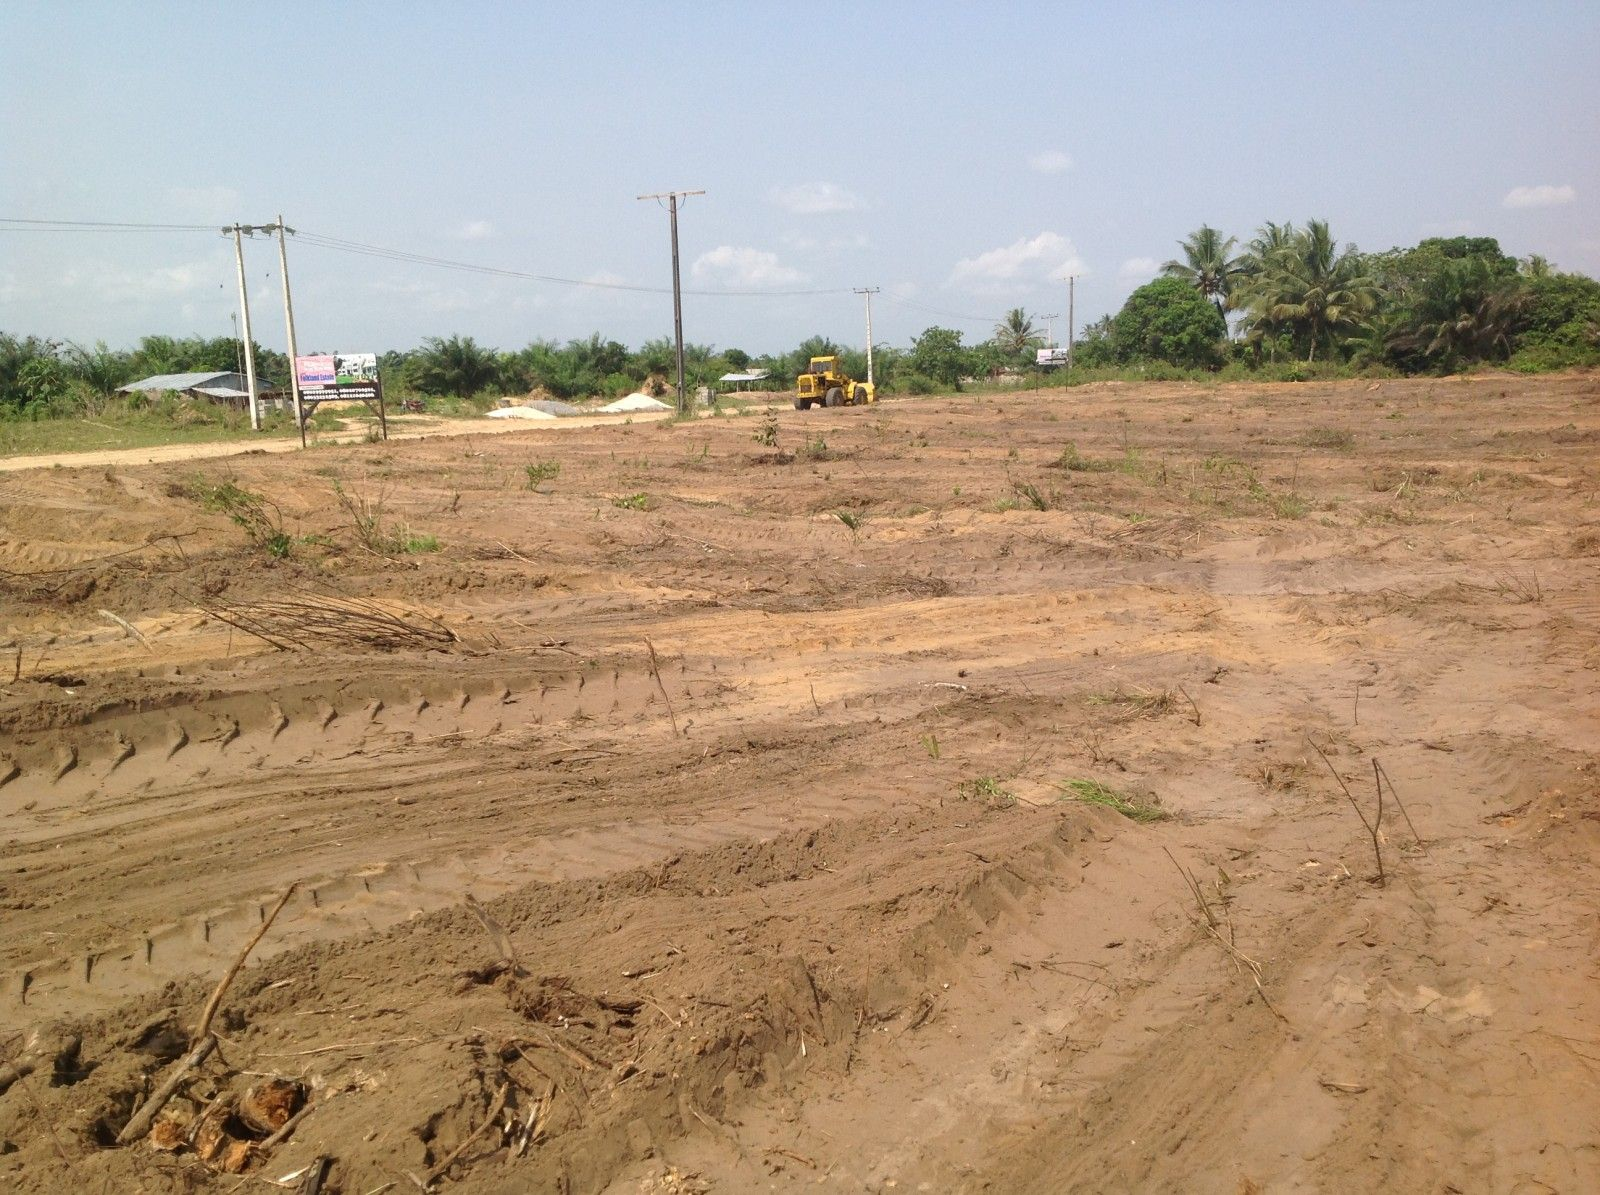 Lands for sale at Lekki  #realestate #property #Land #forsale #Lekki #Lagos #Nigeria